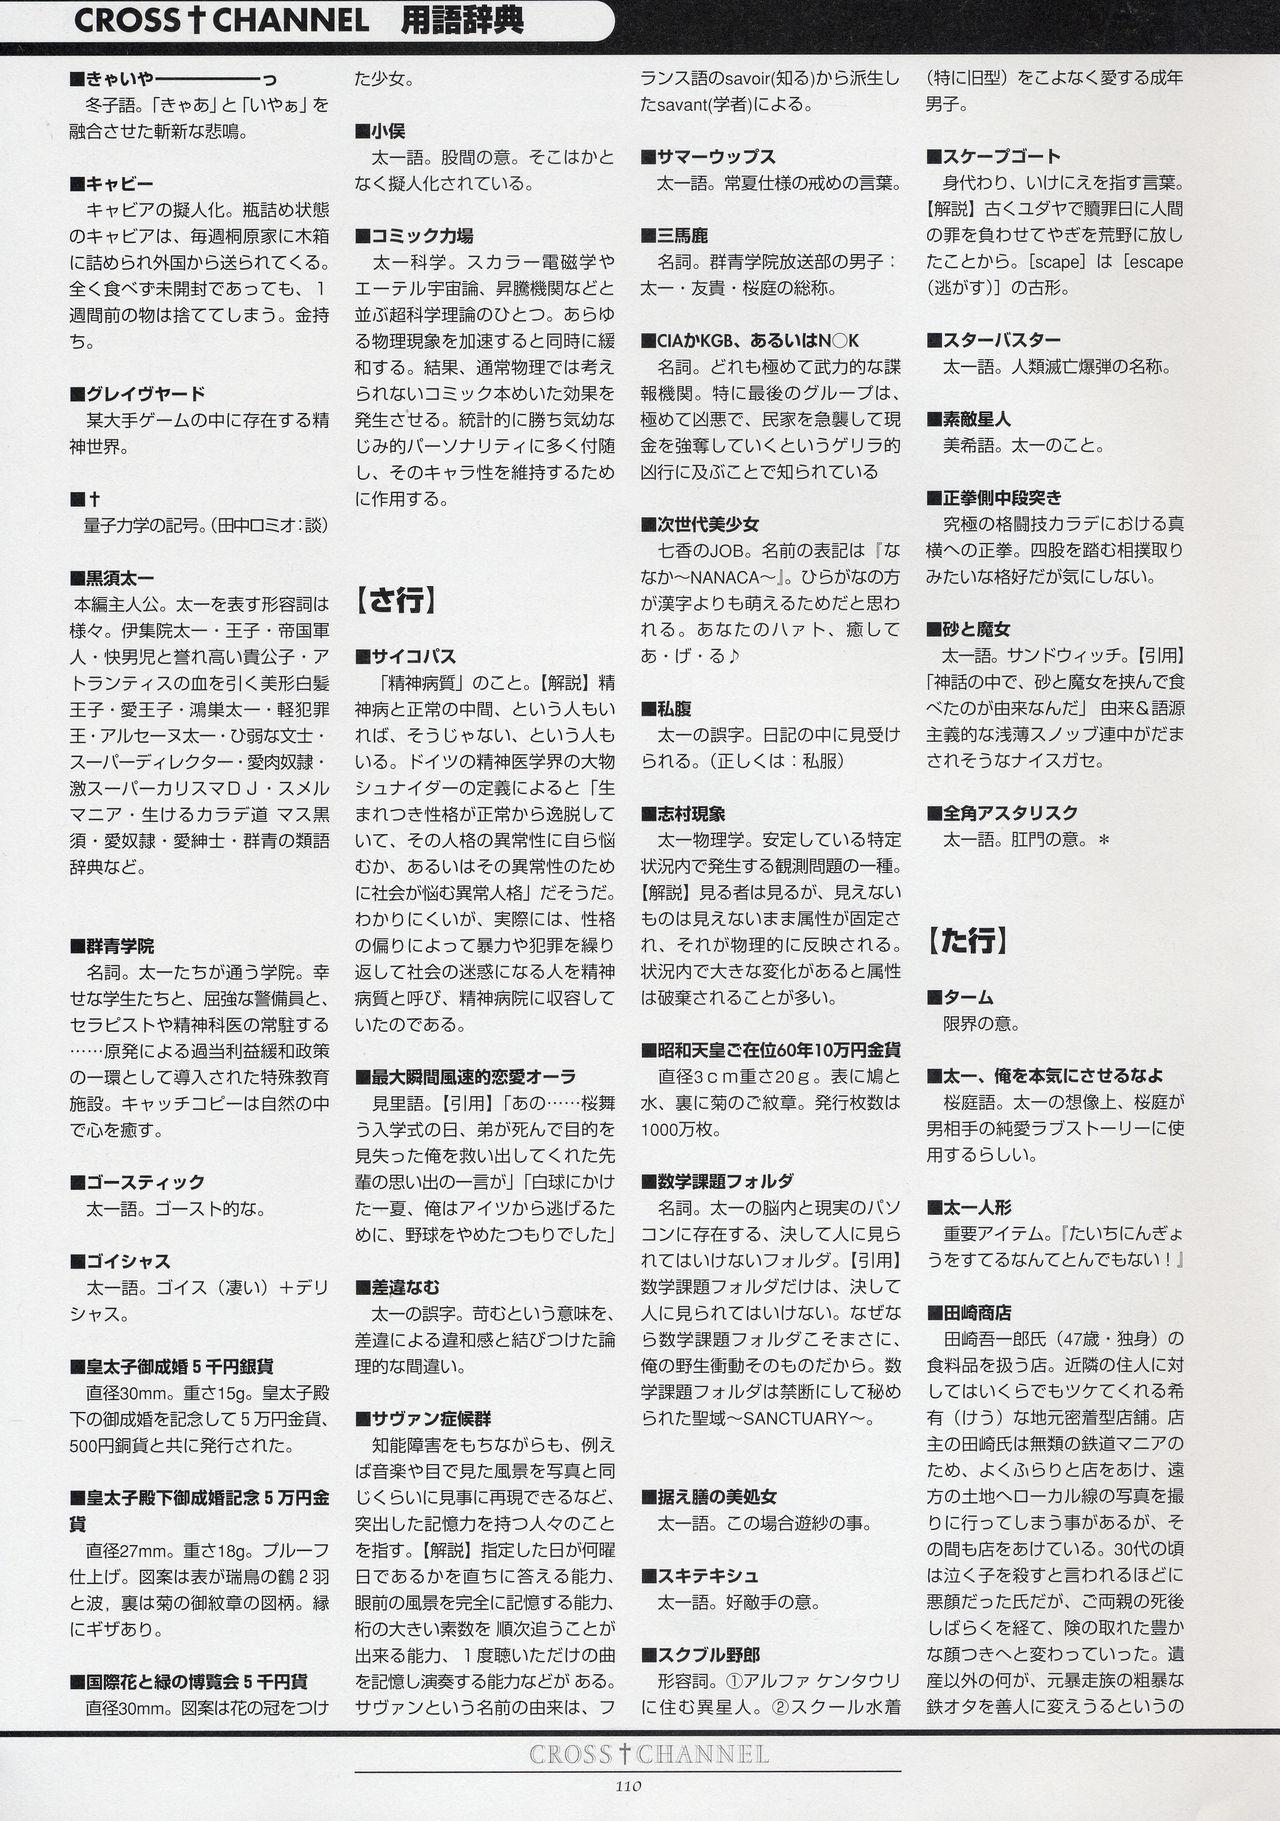 CROSS†CHANNEL Official Setting Materials 120